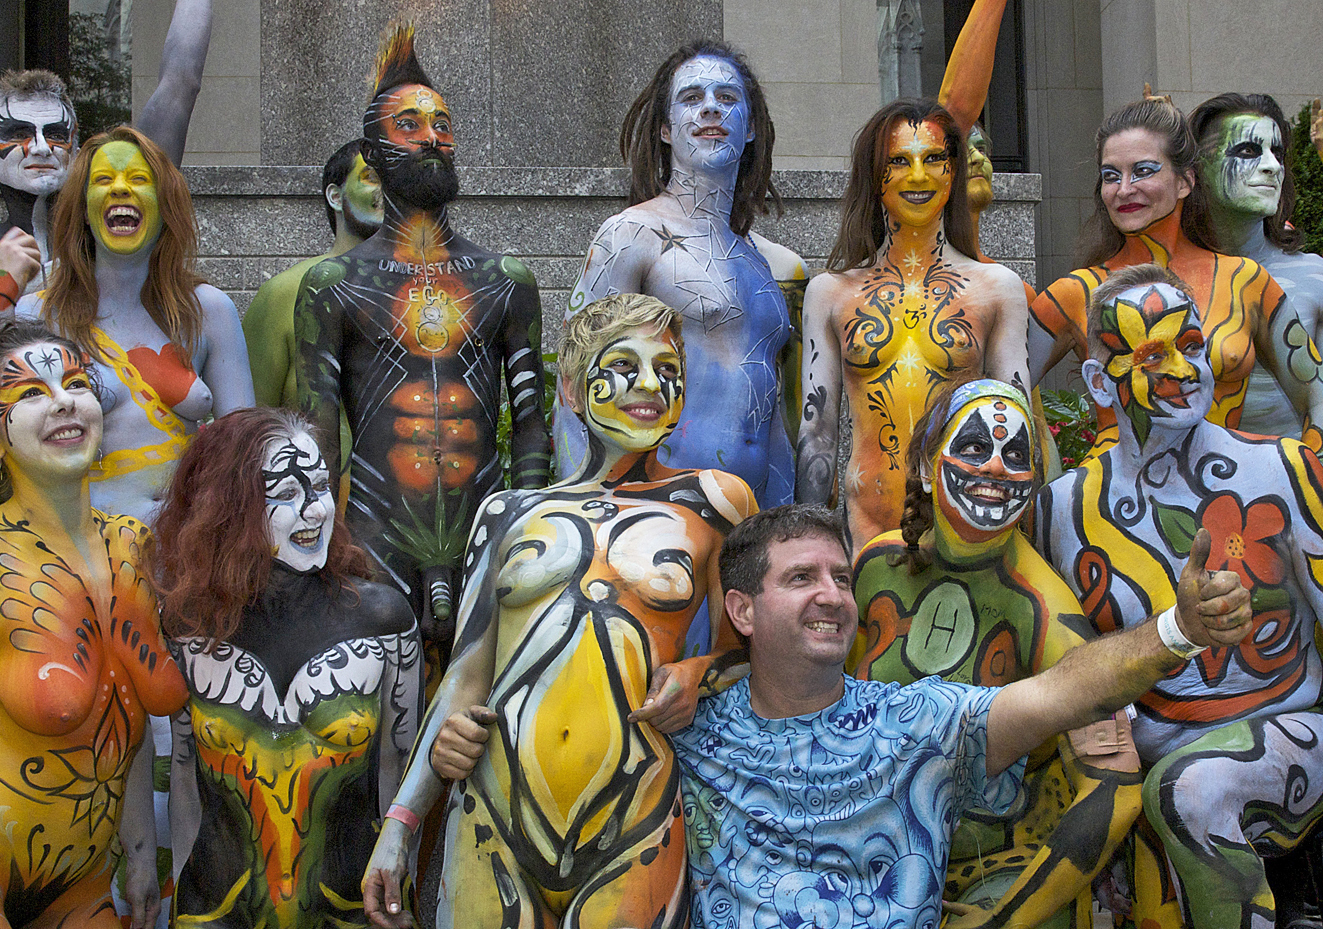 12 Reasons To Love Nudity And Celebrate NYC Bodypainting